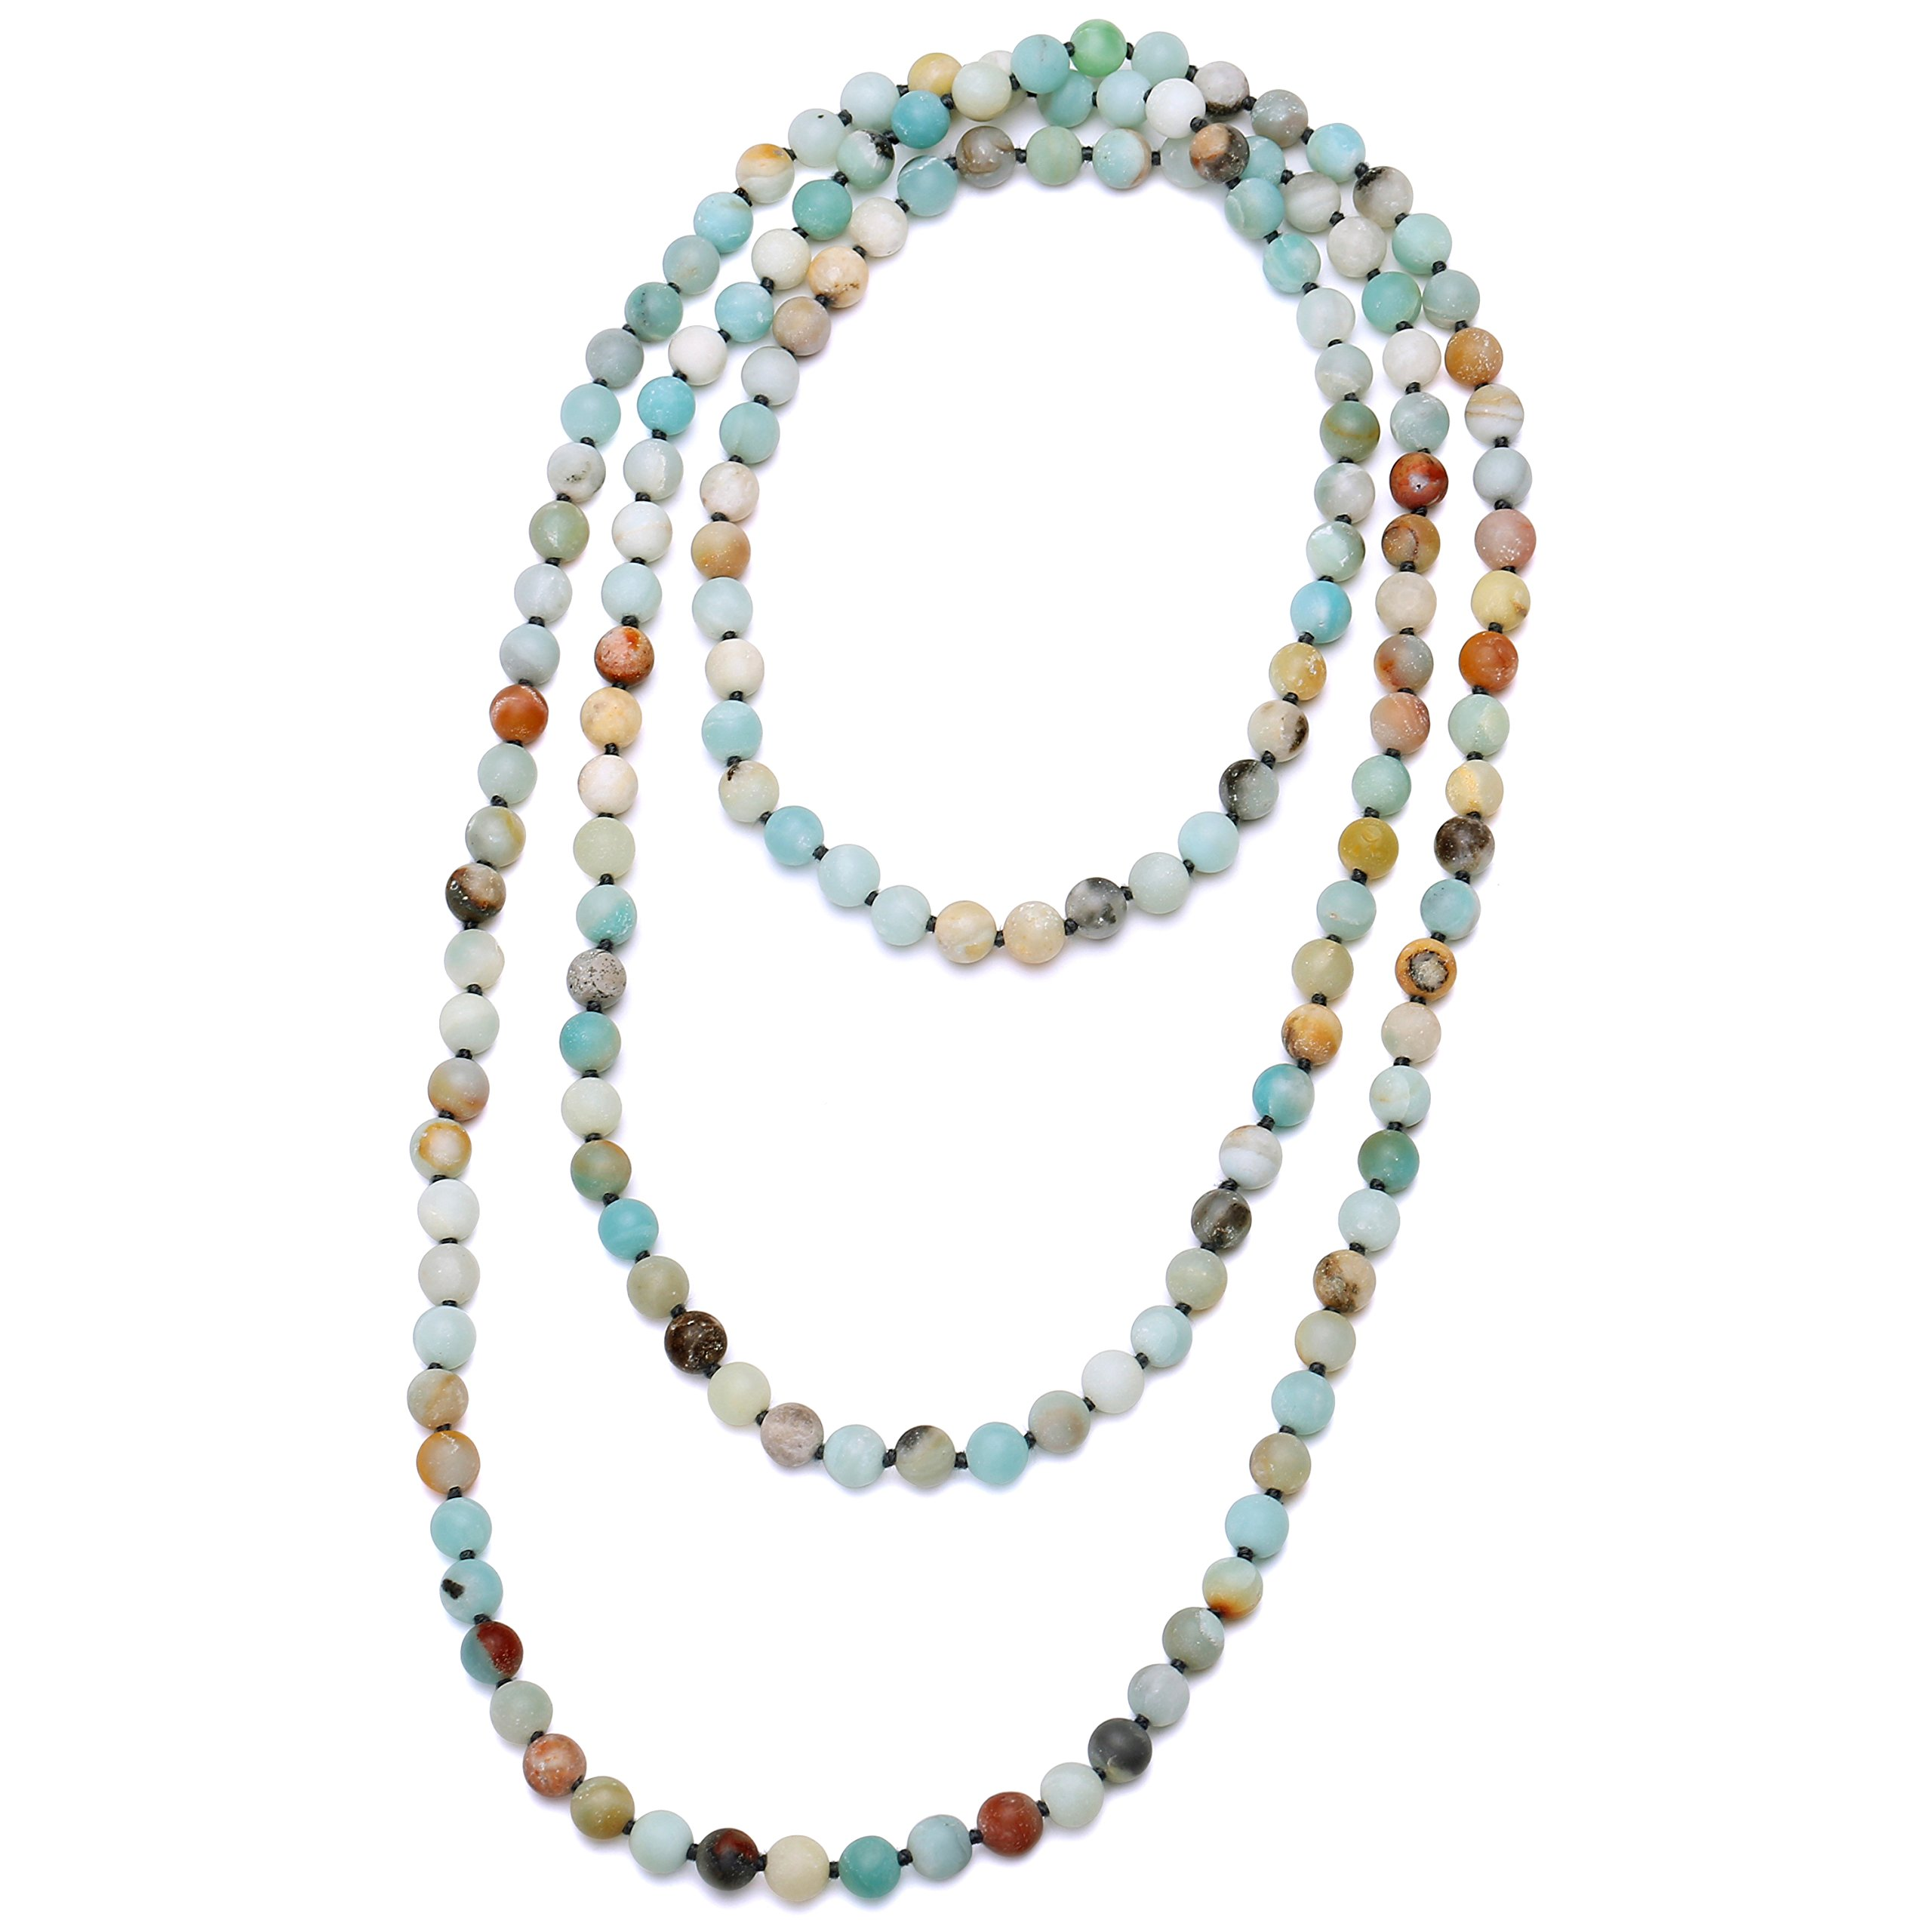 Natural Matte Amazonite Stones Endless Necklace Long Knotted 8 mm Beaded Handmade Jewelry 59'' by Aobei